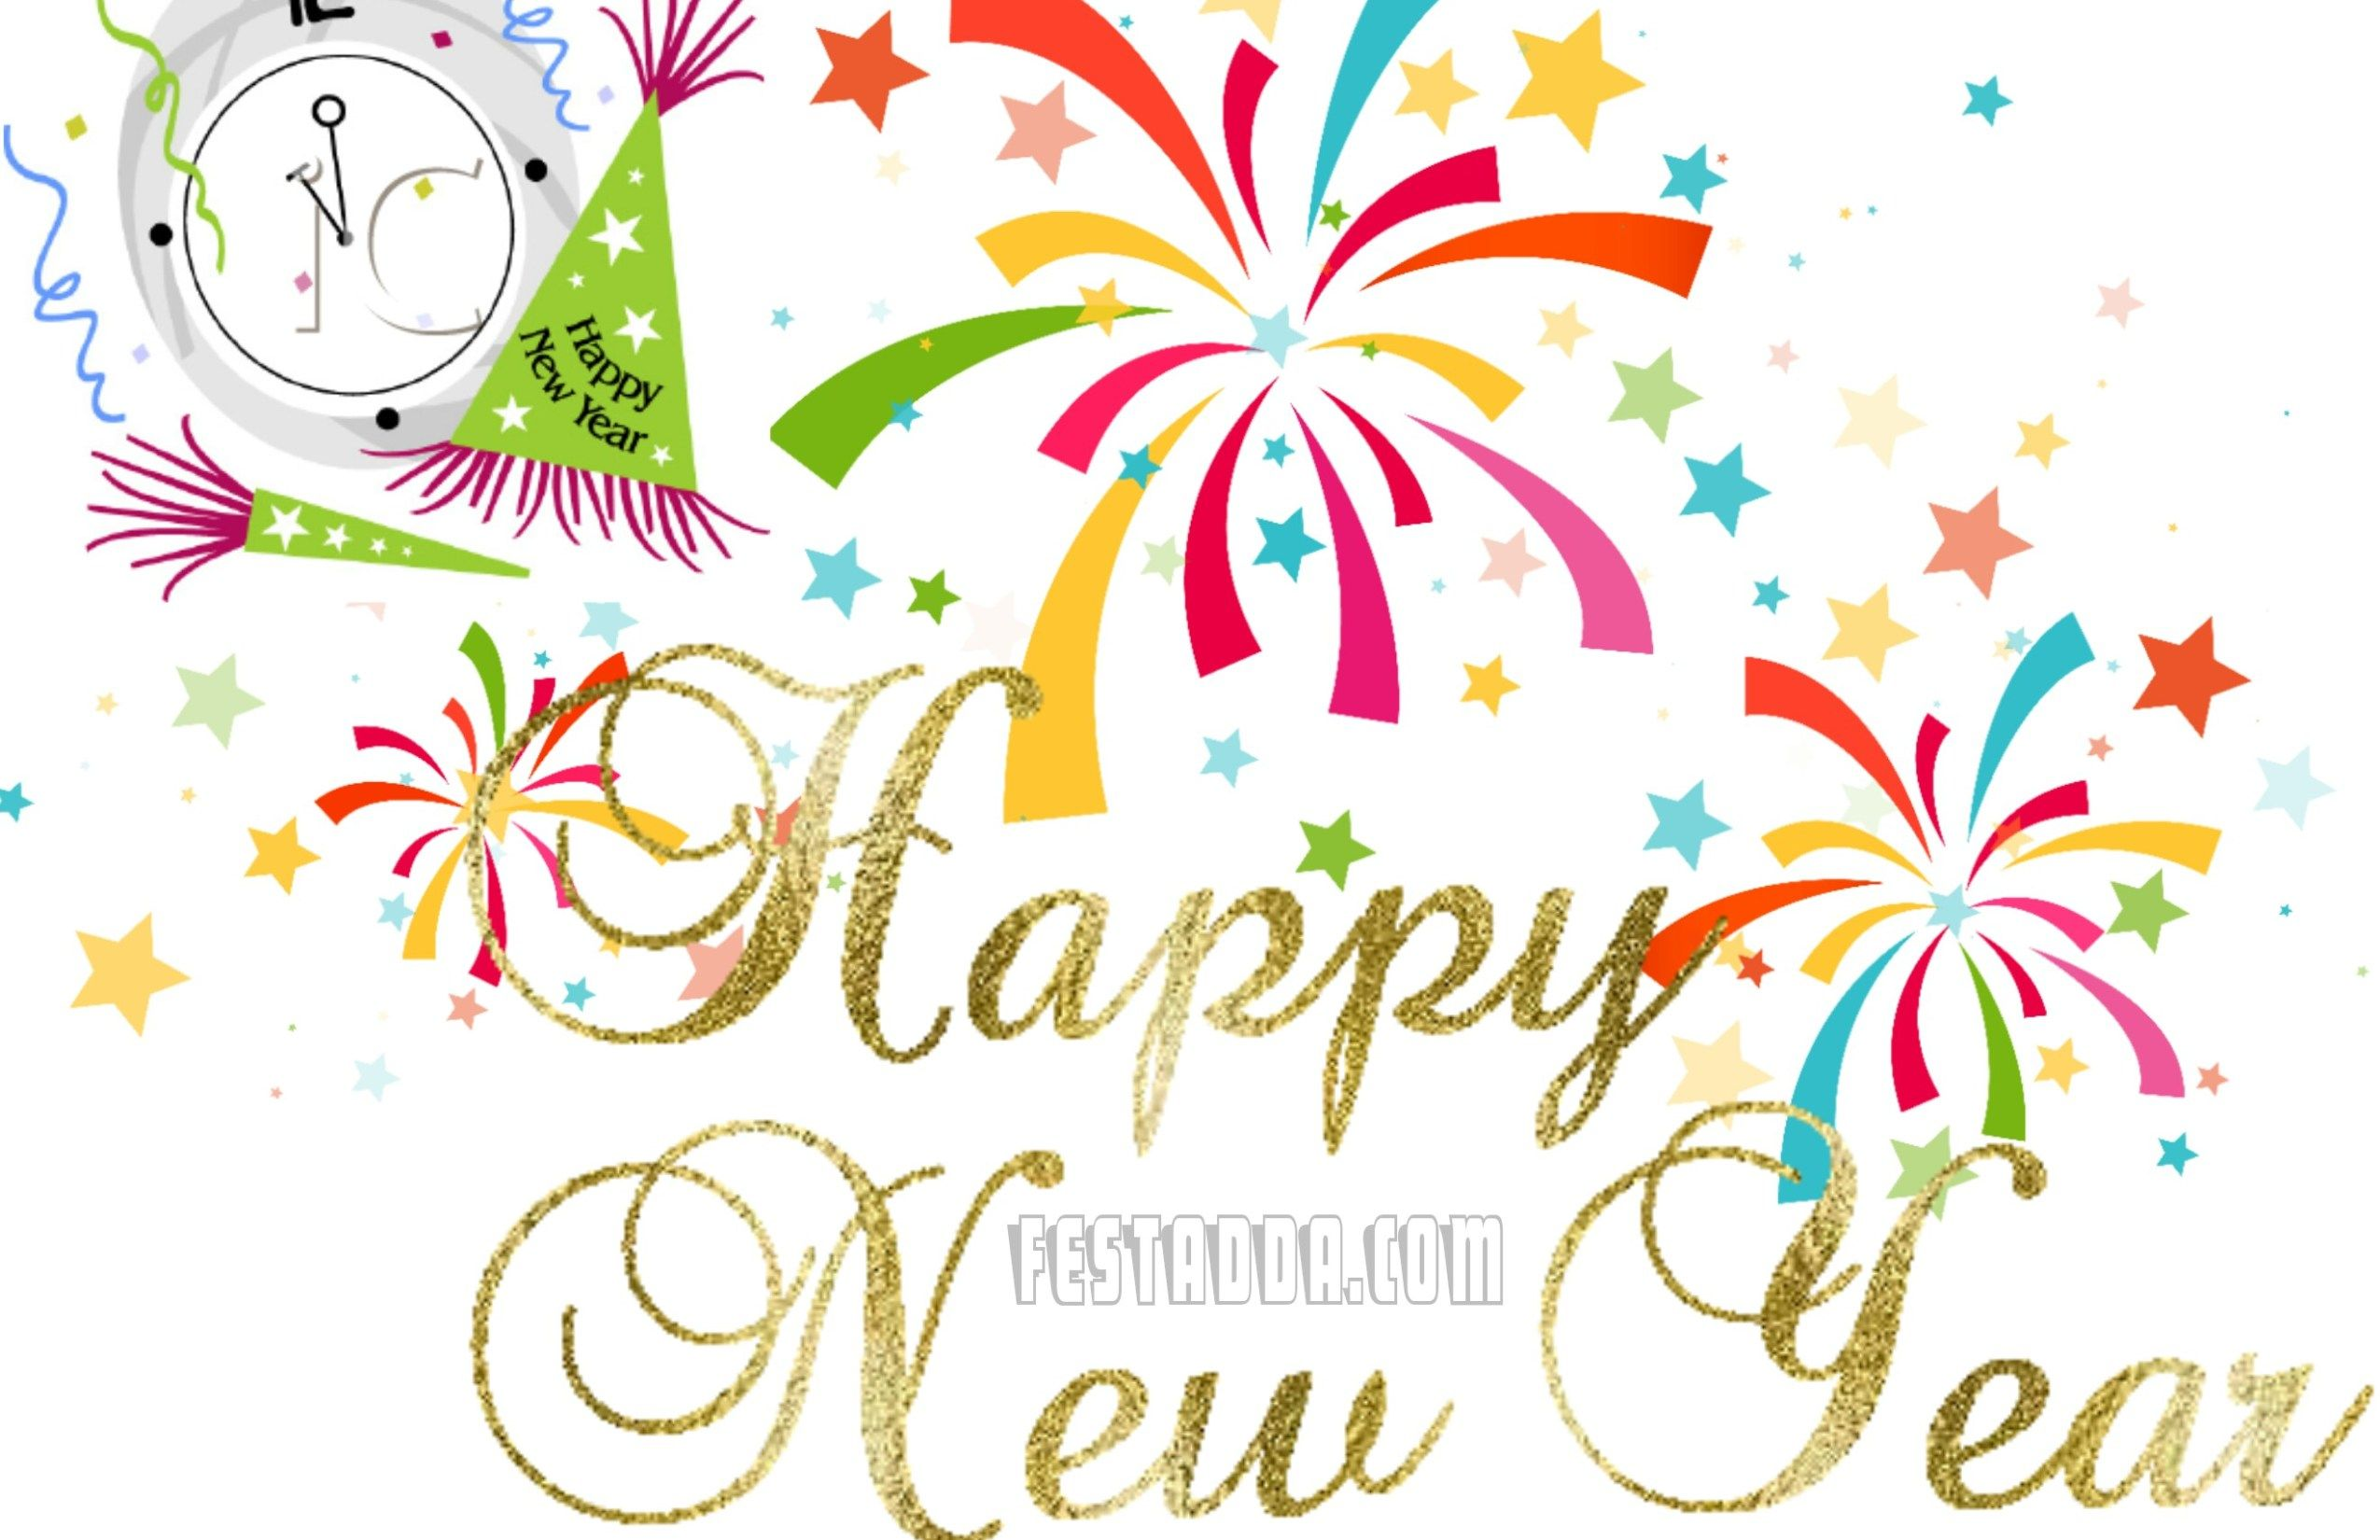 Free Happy New Year Clipart 2019 Images Pics Photos.